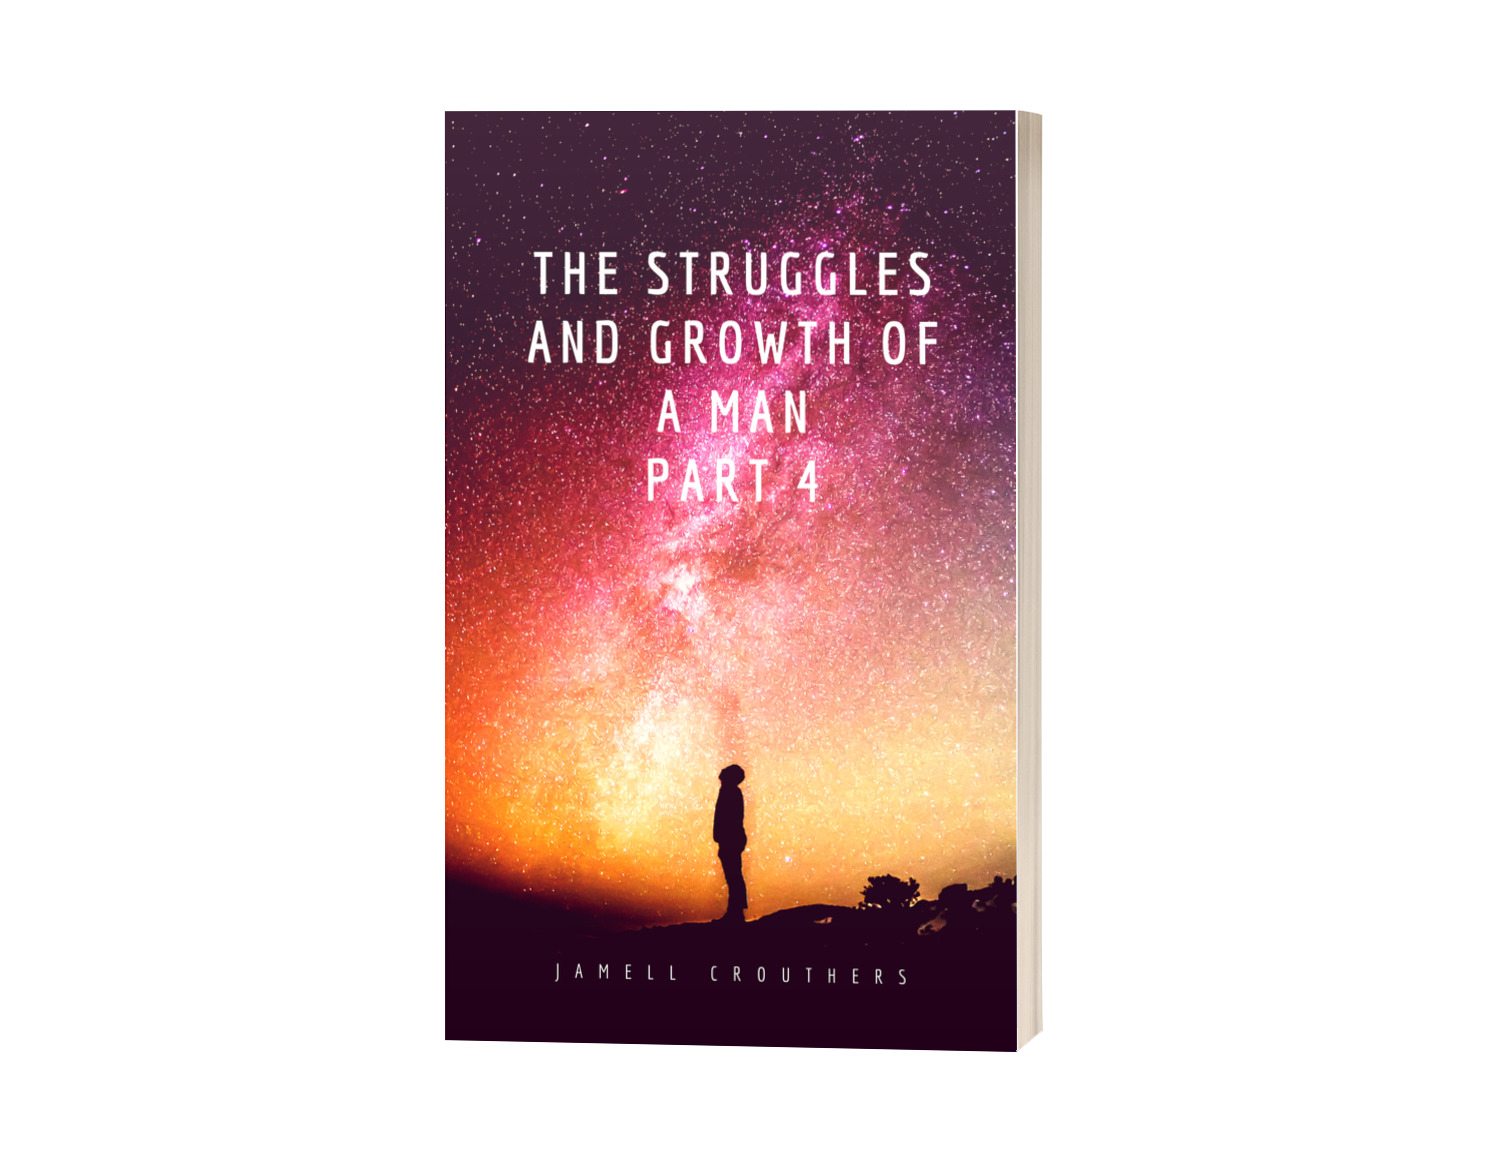 Struggles and Growth Part 4 goes back and forth between Robert and Michael as they share where they are mentally and emotionally in life.